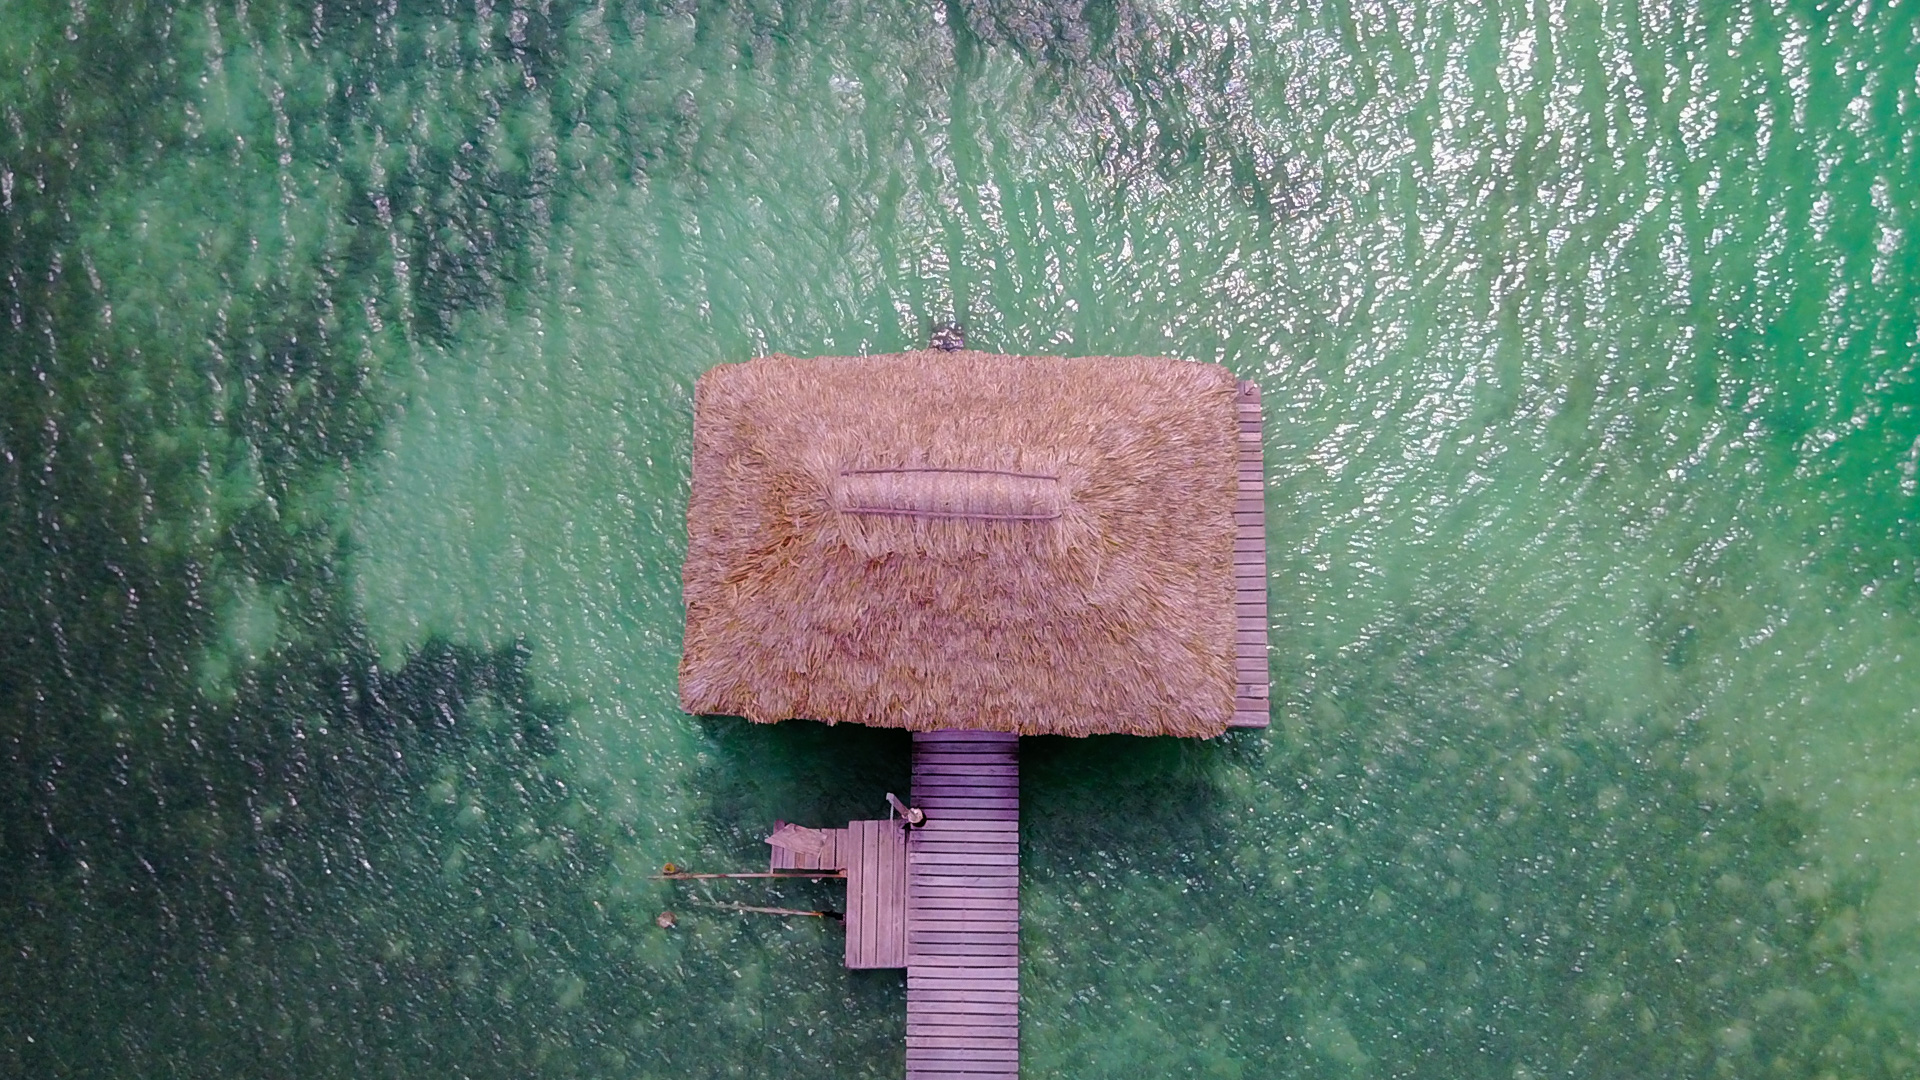 Drone Photography | up+up | Beach Hut 2.jpg